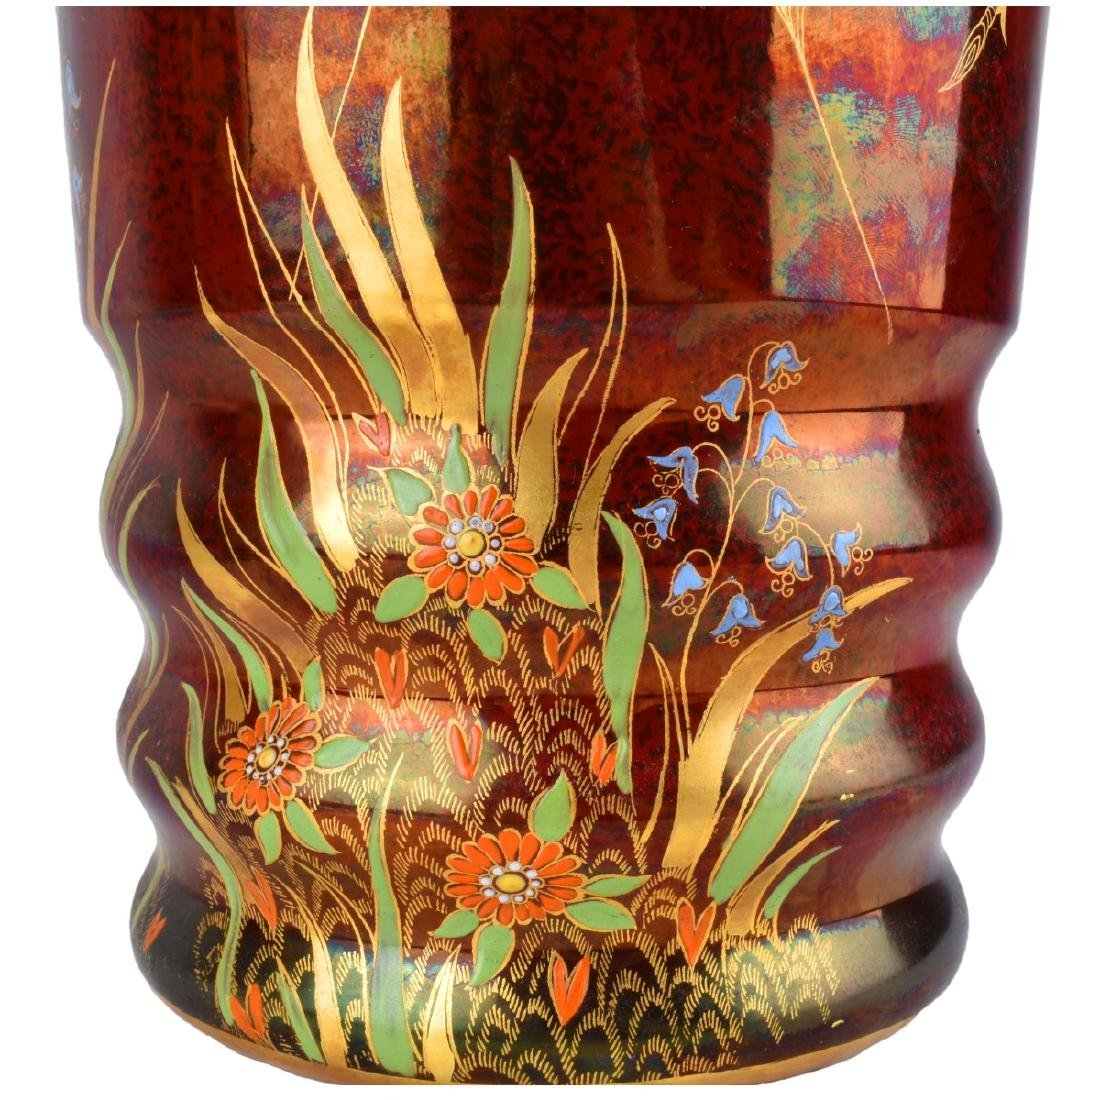 Carlton Ware Rouge Luster Pottery Vases - 2